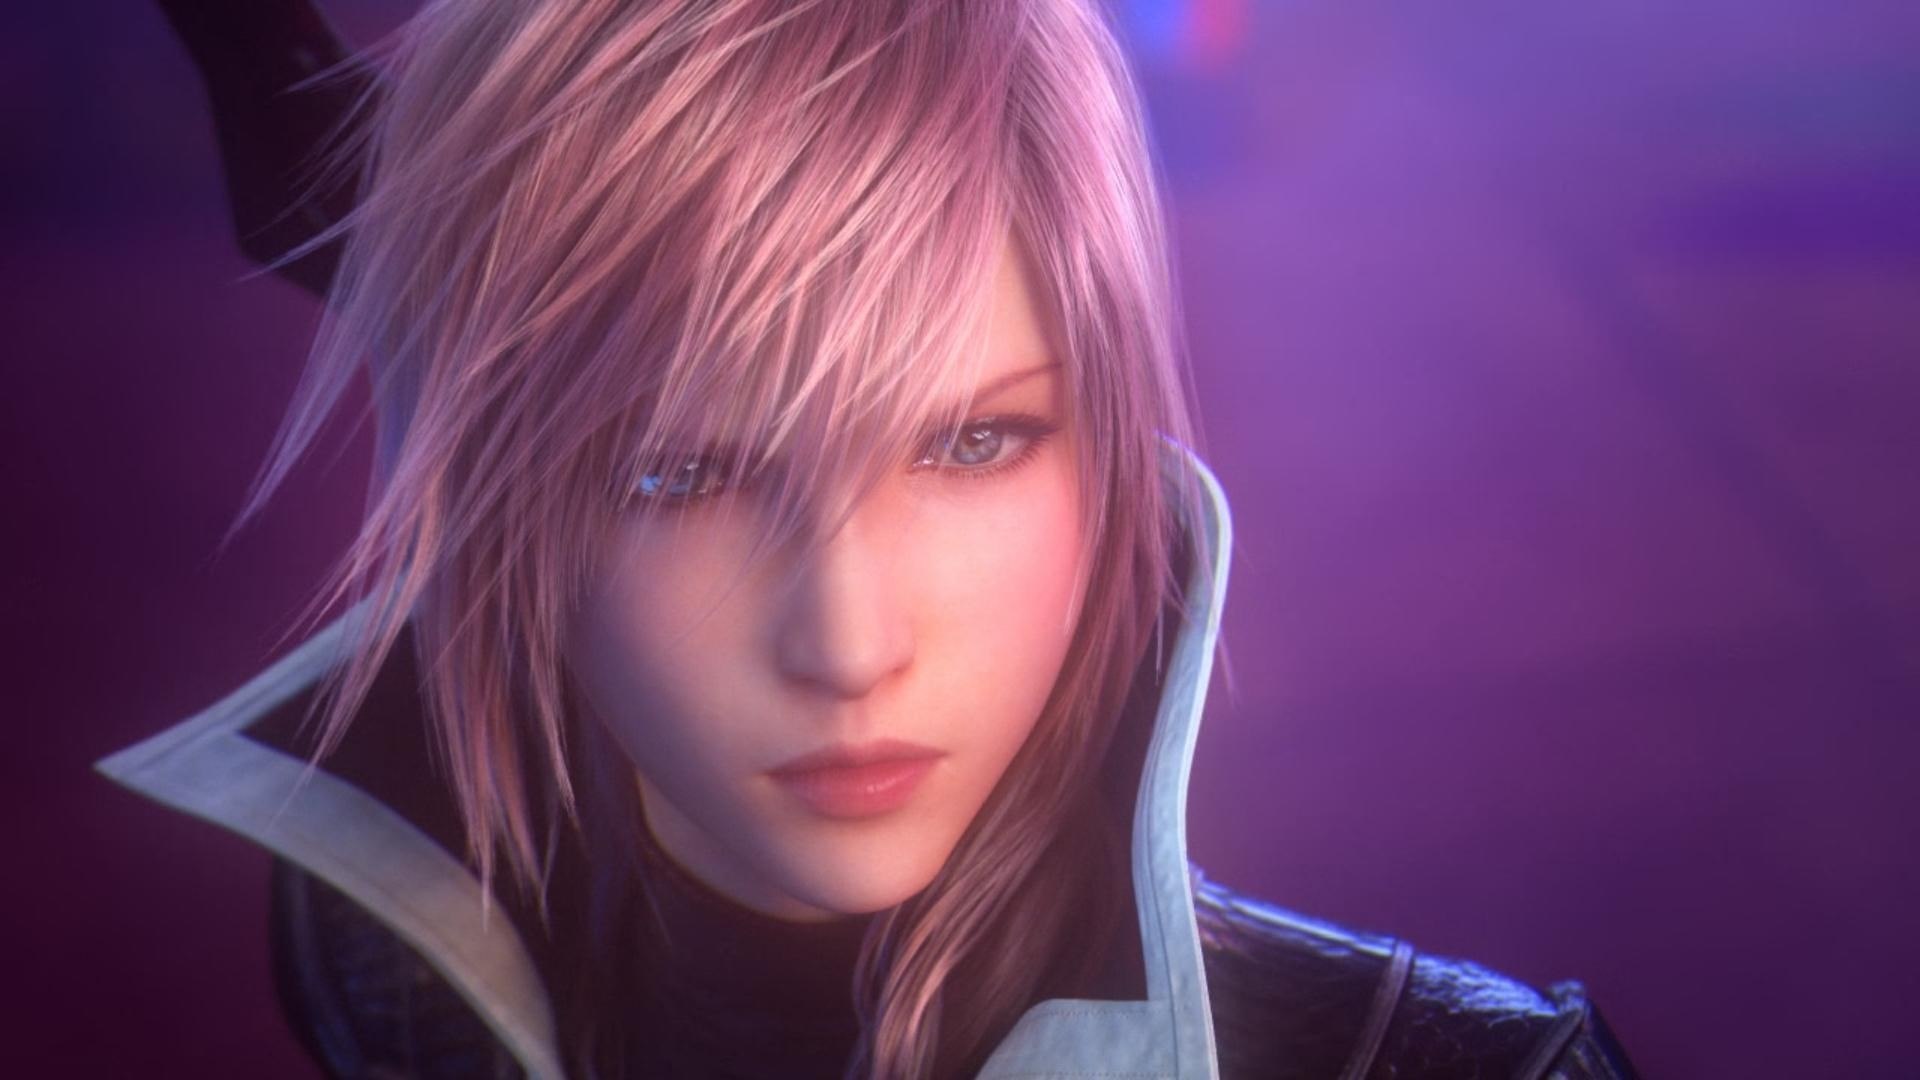 1920x1080  px Images for Desktop: lightning returns final fantasy xiii  picture by Ashton WilKinson for